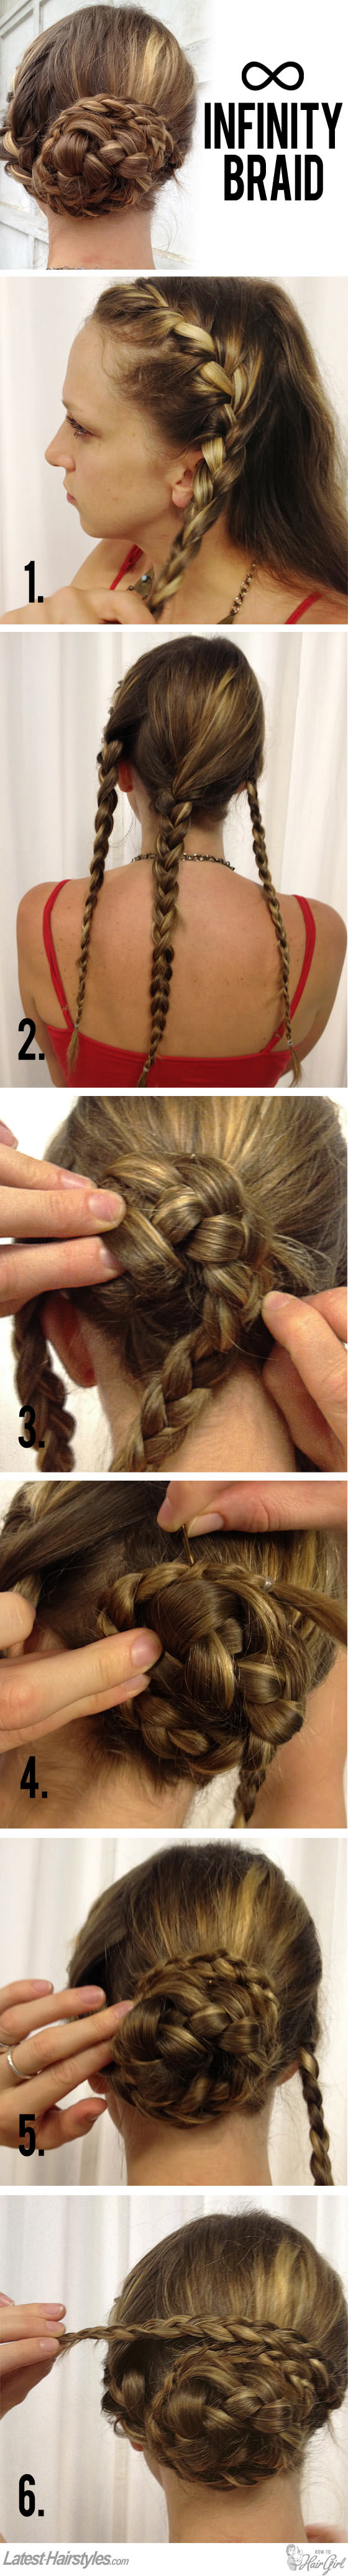 braided hairstyle infinity